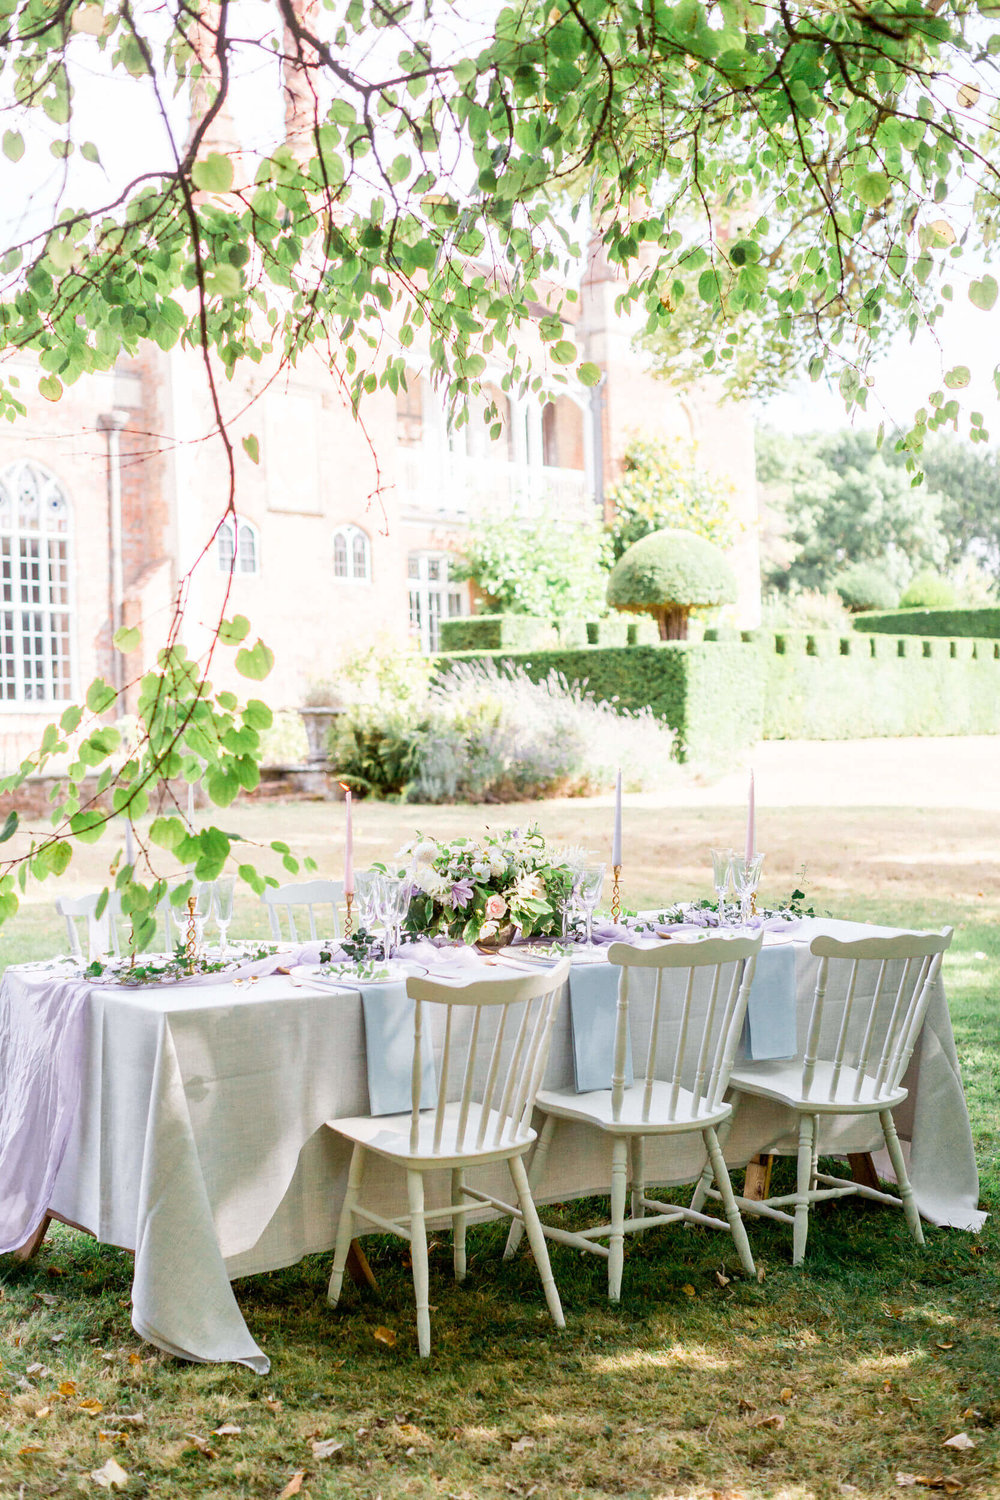 Wedding Breakfast Table at Nether Winchendon House